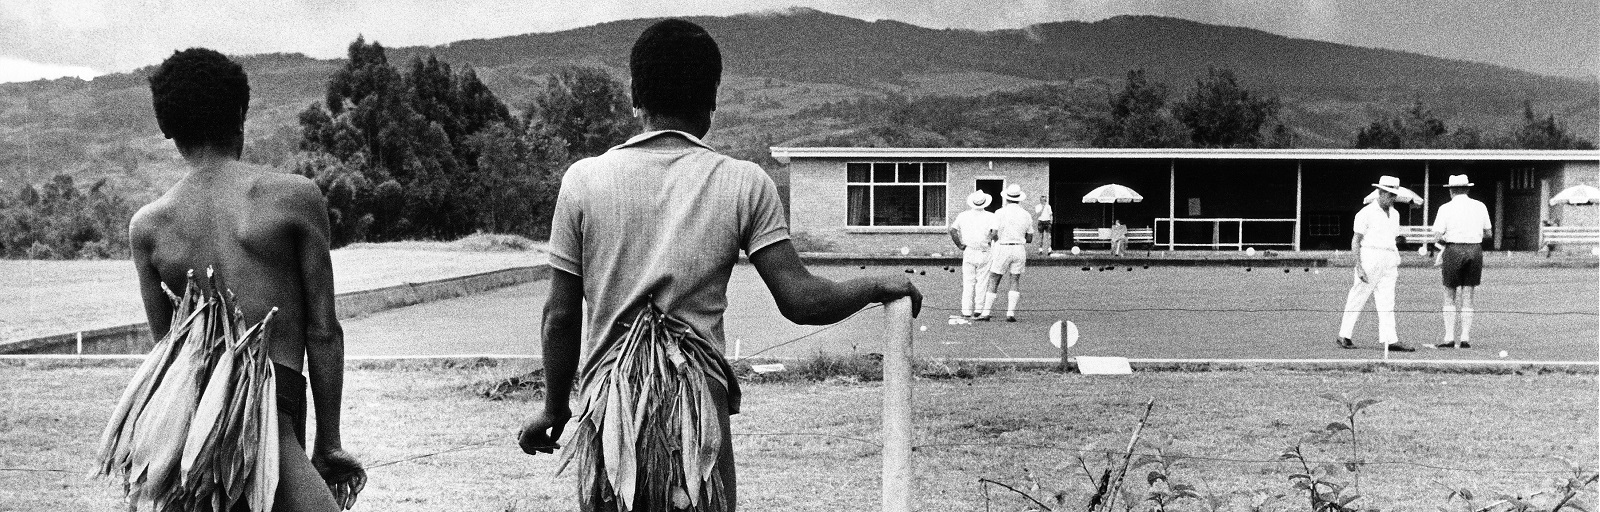 Papua New Guineans watch Austrailians playing boule c.1970 (Photo: Getty Images)